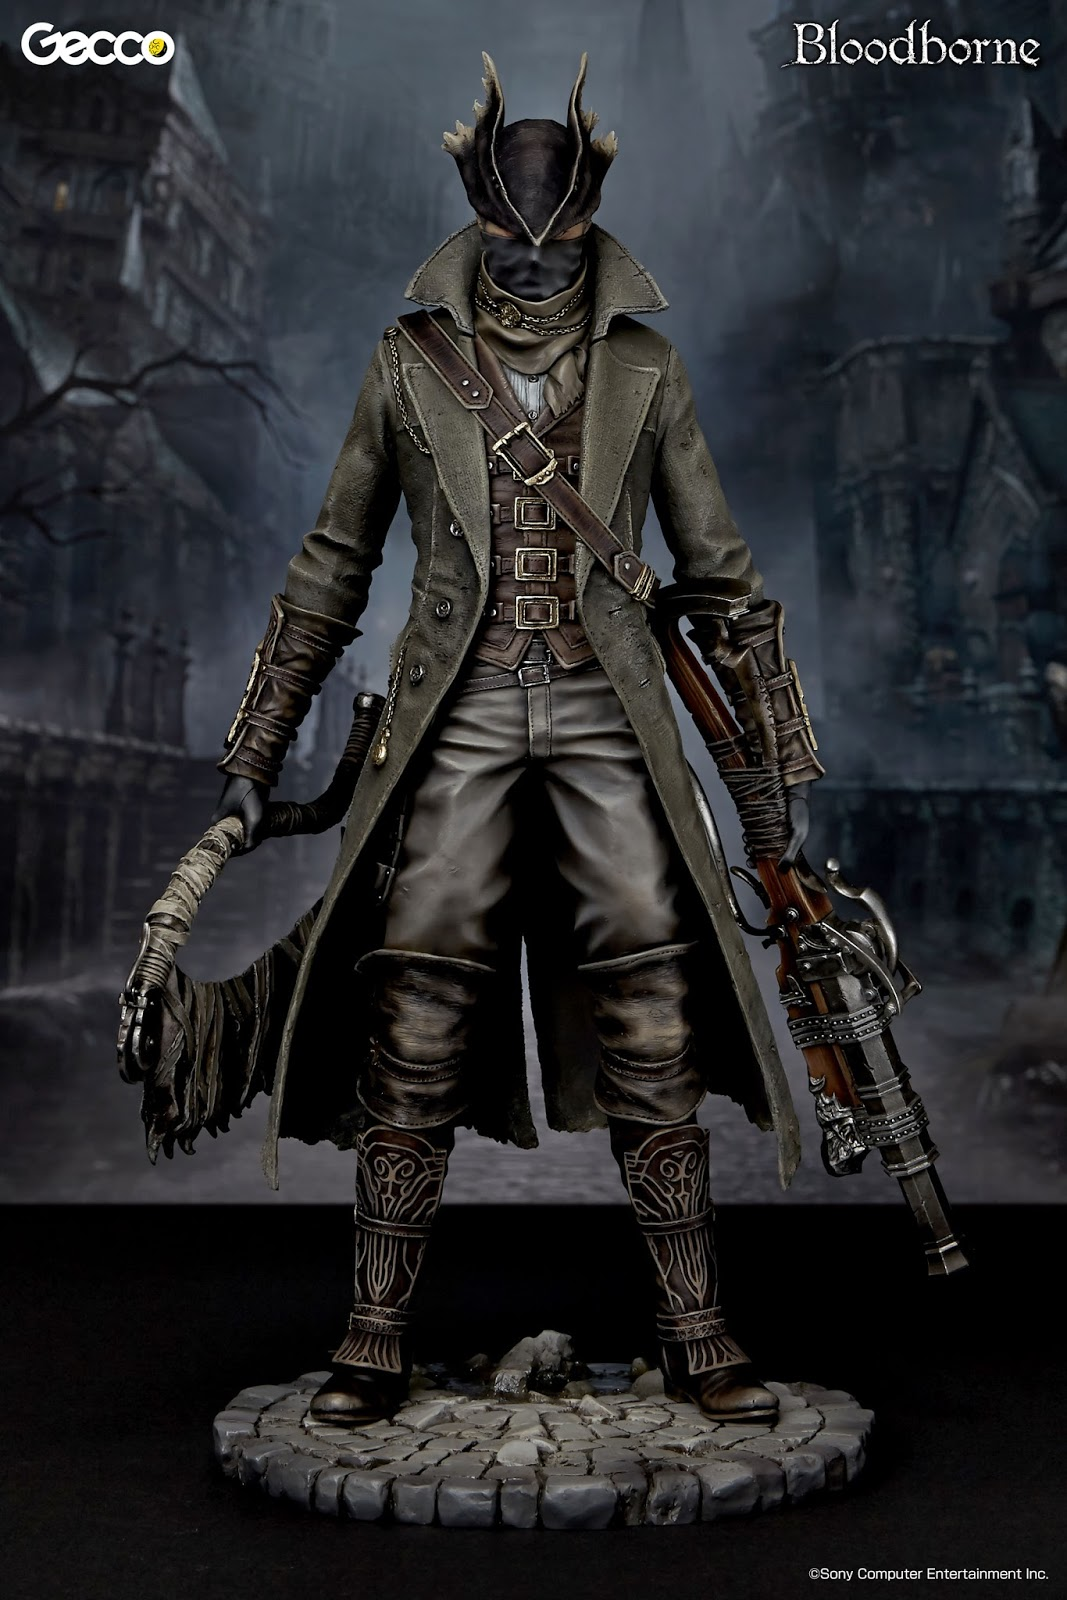 Action Figure Blues: Gecco Corp Announces Bloodborne ...